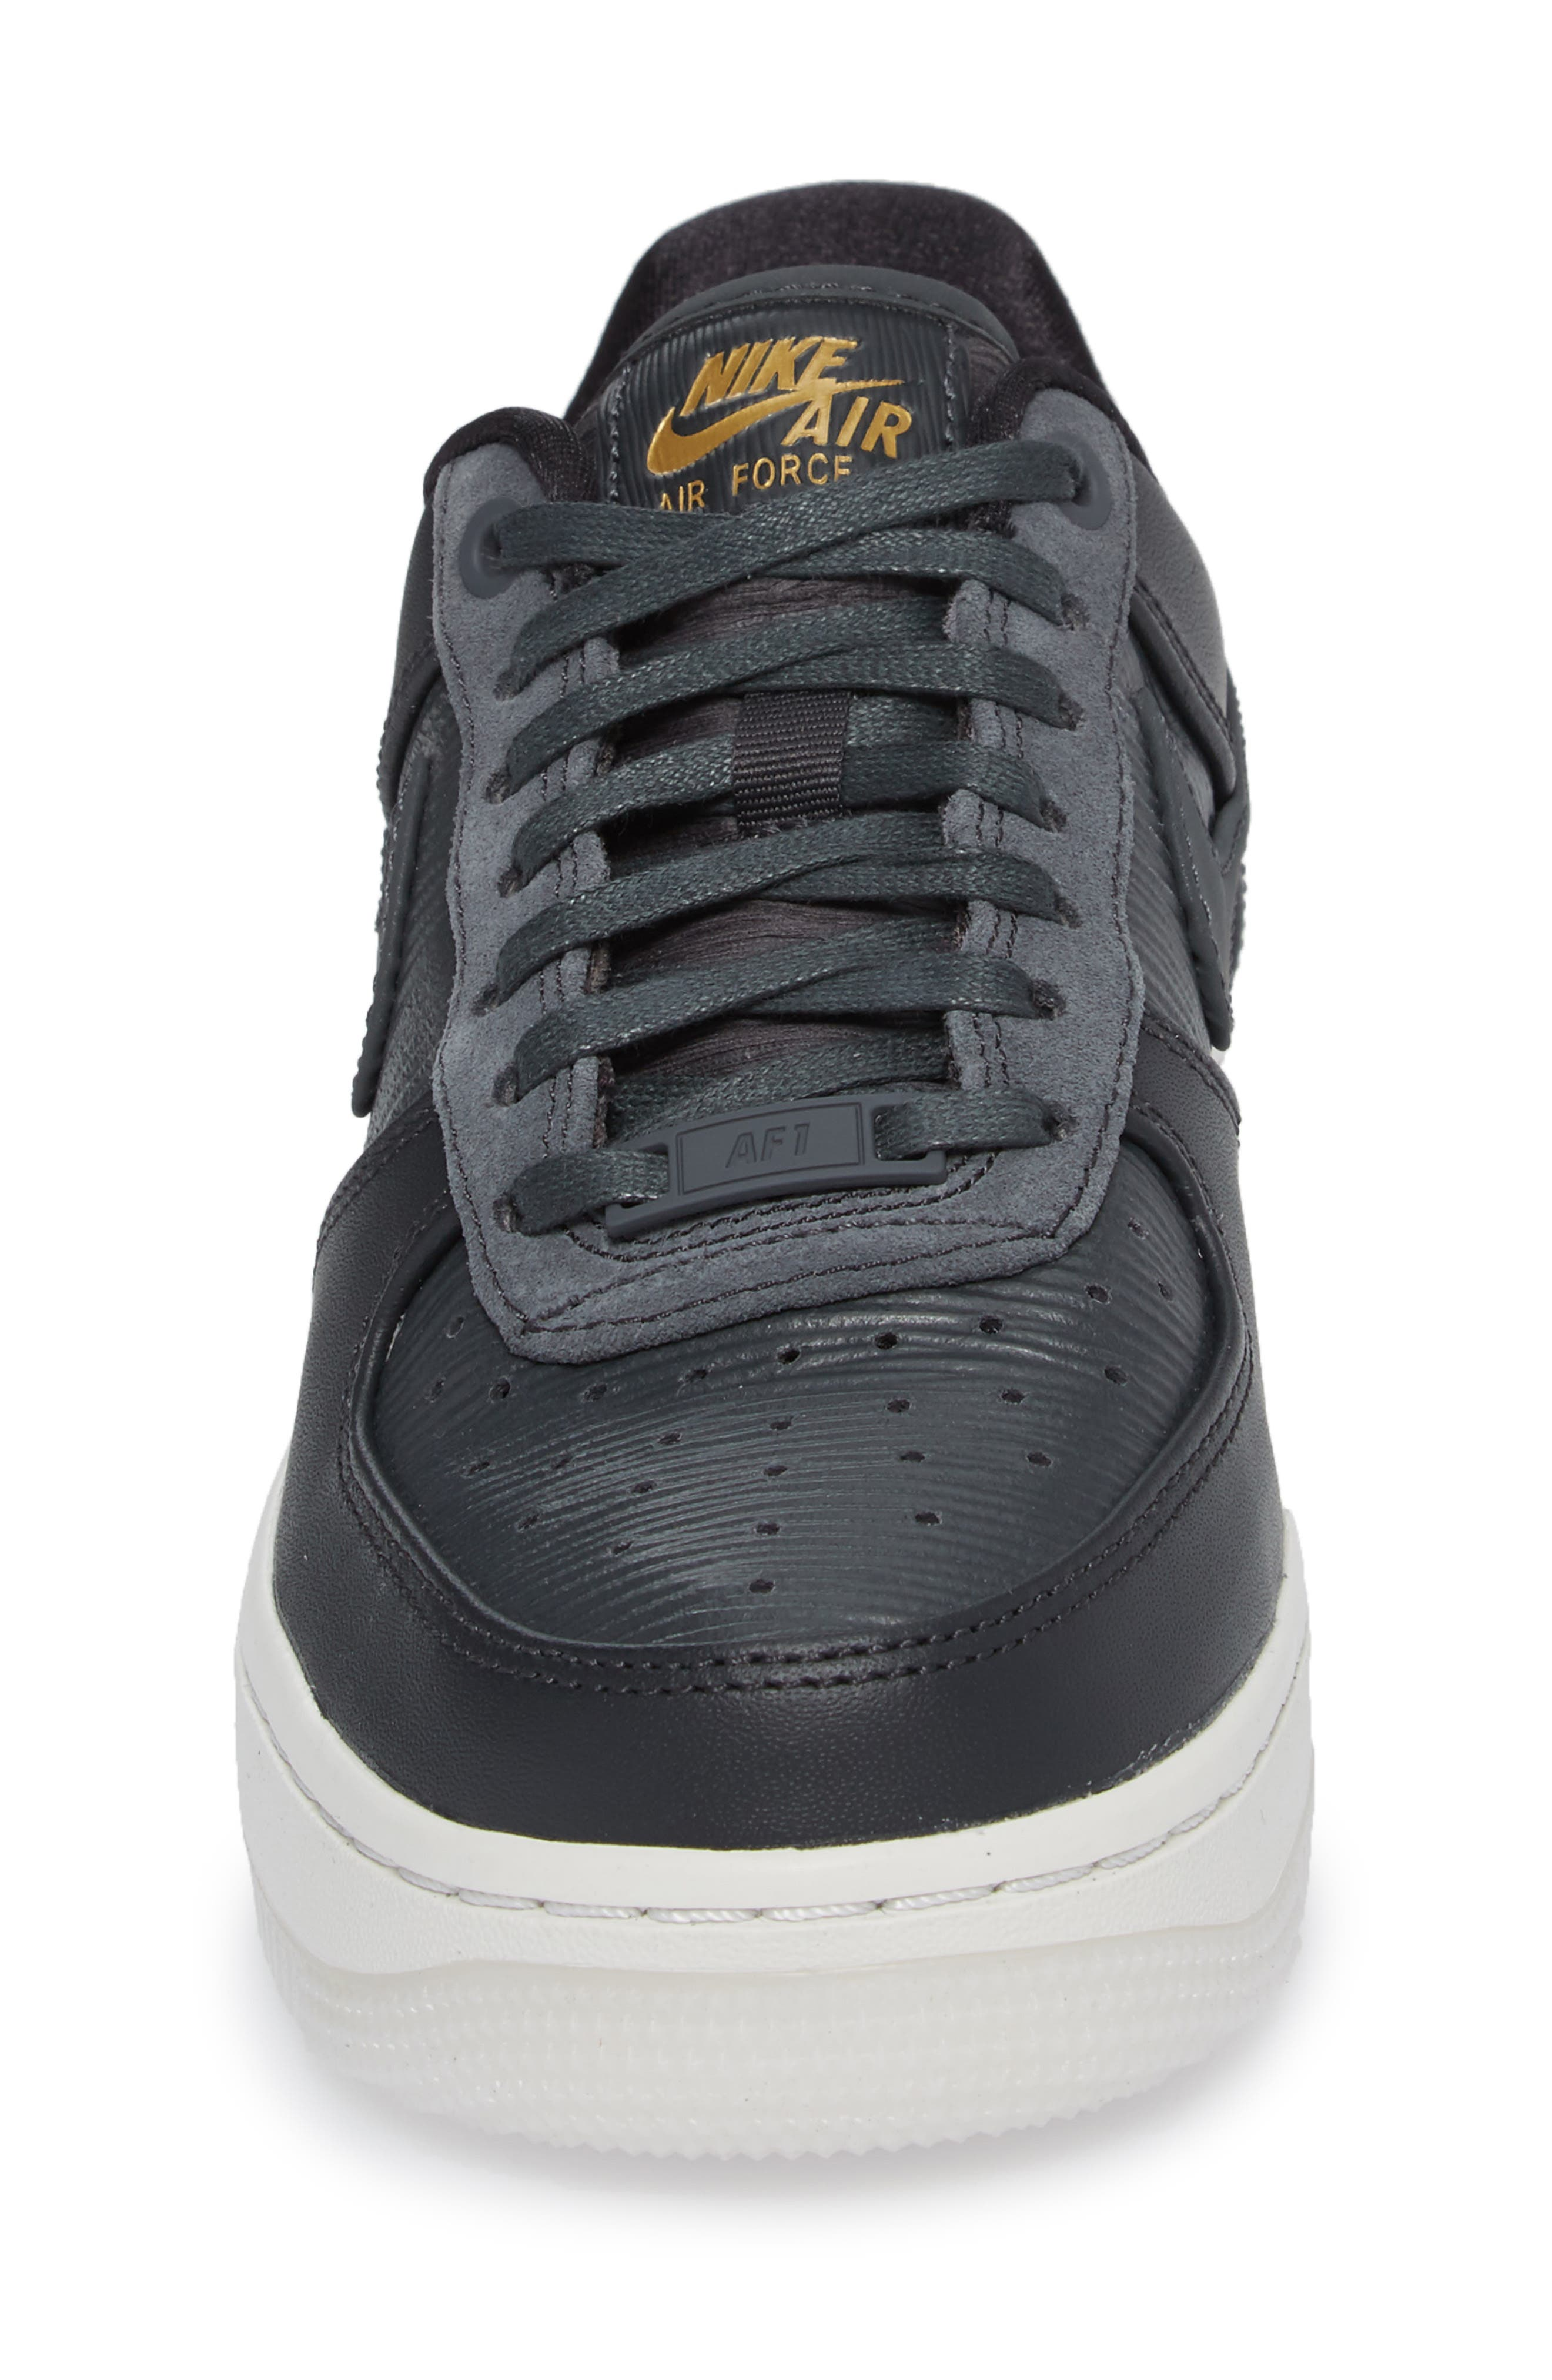 Air Force 1 '07 LX Sneaker,                             Alternate thumbnail 4, color,                             ANTHRACITE/ ANTHRACITE